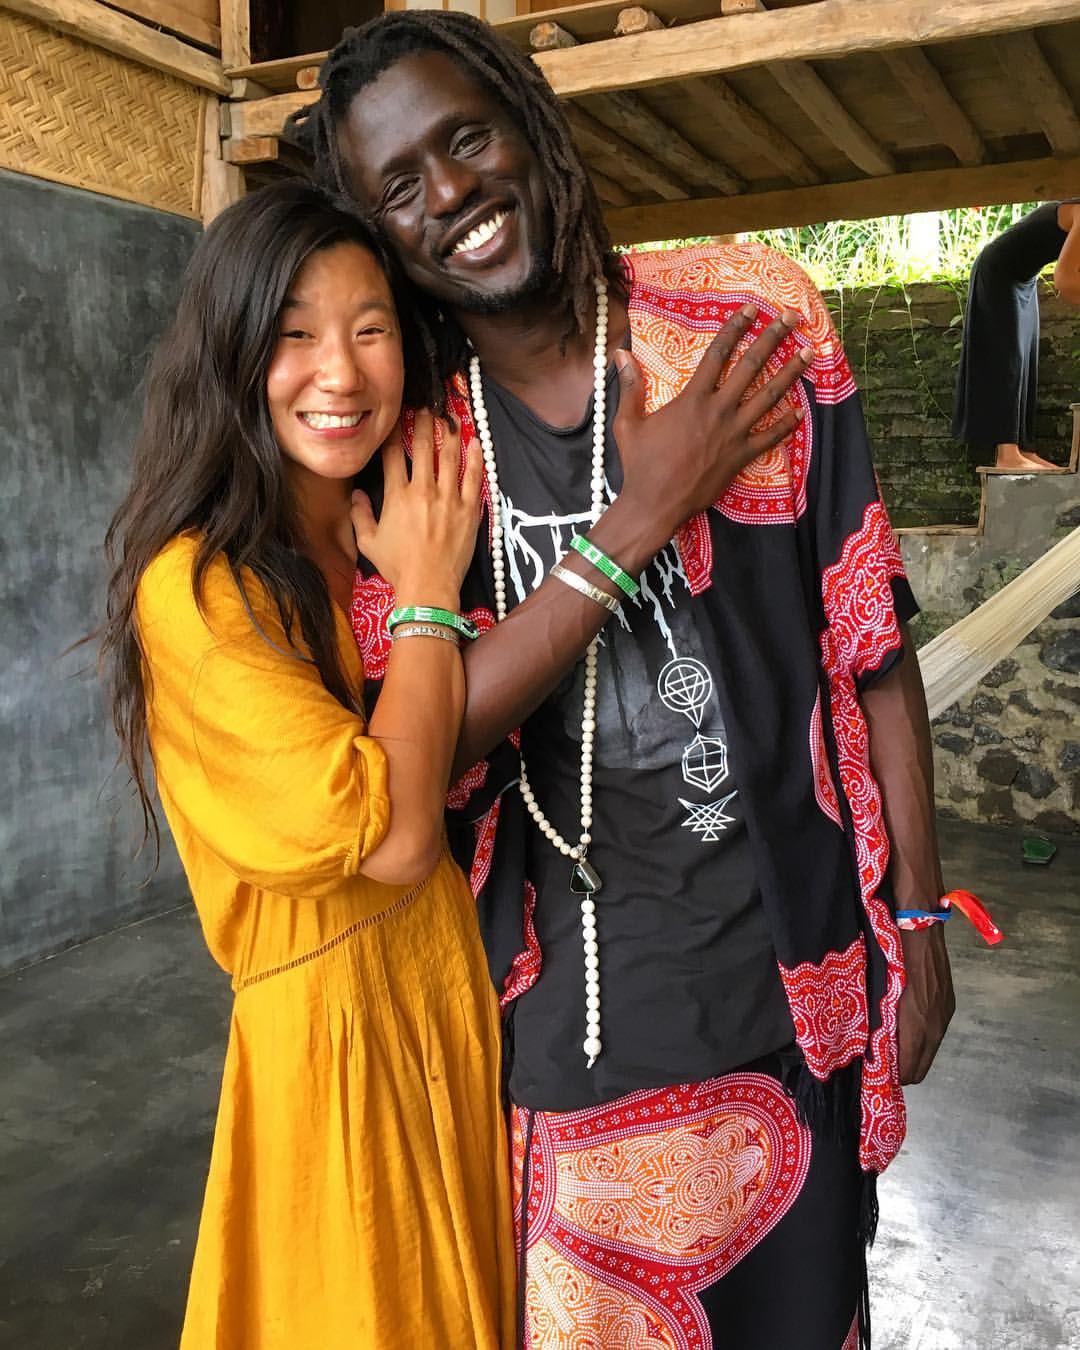 """INSTAGRAM PHOTO via  @  thesupplychange """"Love & Peace. Grateful to have original supporter  @emmanueljal a part of the  @loveisproject  #loveisgreen photoshoot today in  #Bali . Beautiful day hanging with friends & sharing the love. #wewantpeace  #loveisproject """""""